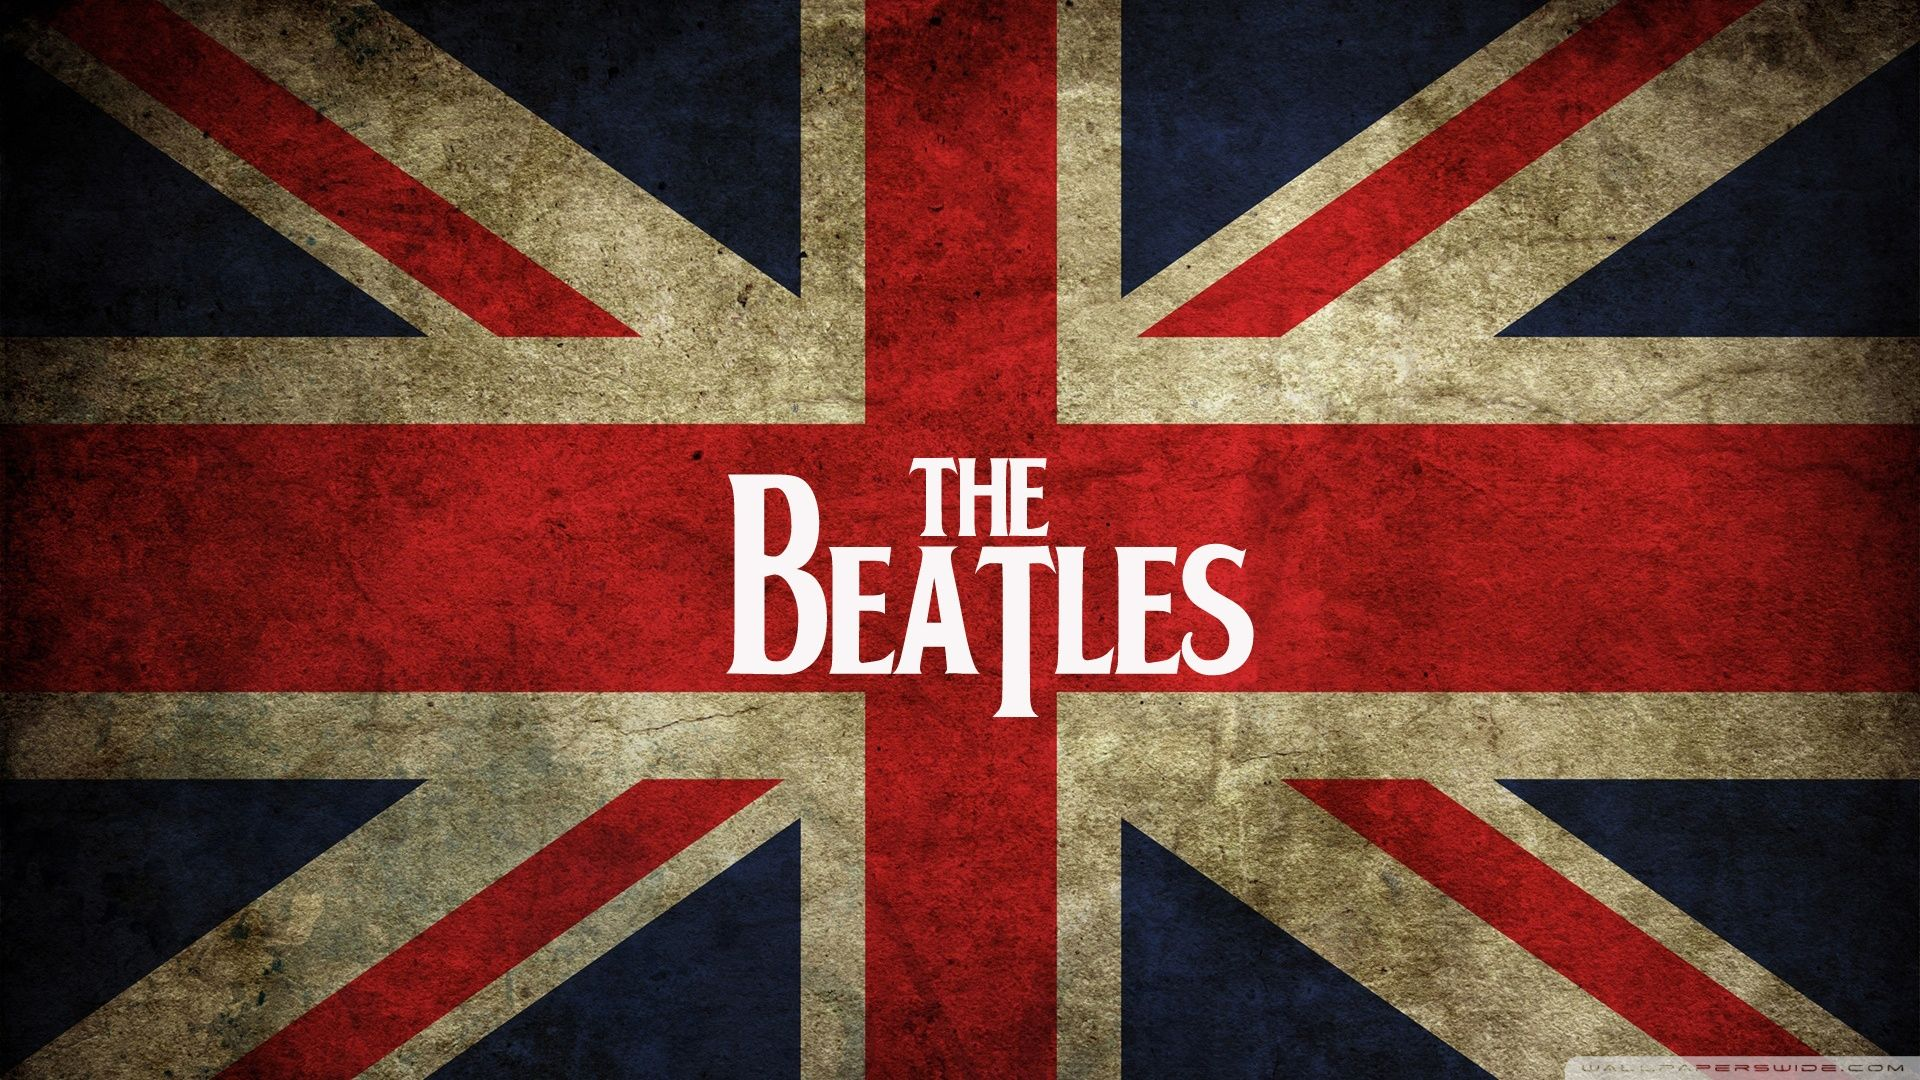 Hd wallpaper you need - The Beatles Hd Wallpapers Beatles The Hd Widescreen High Definition Wallpaper With 1920x1080